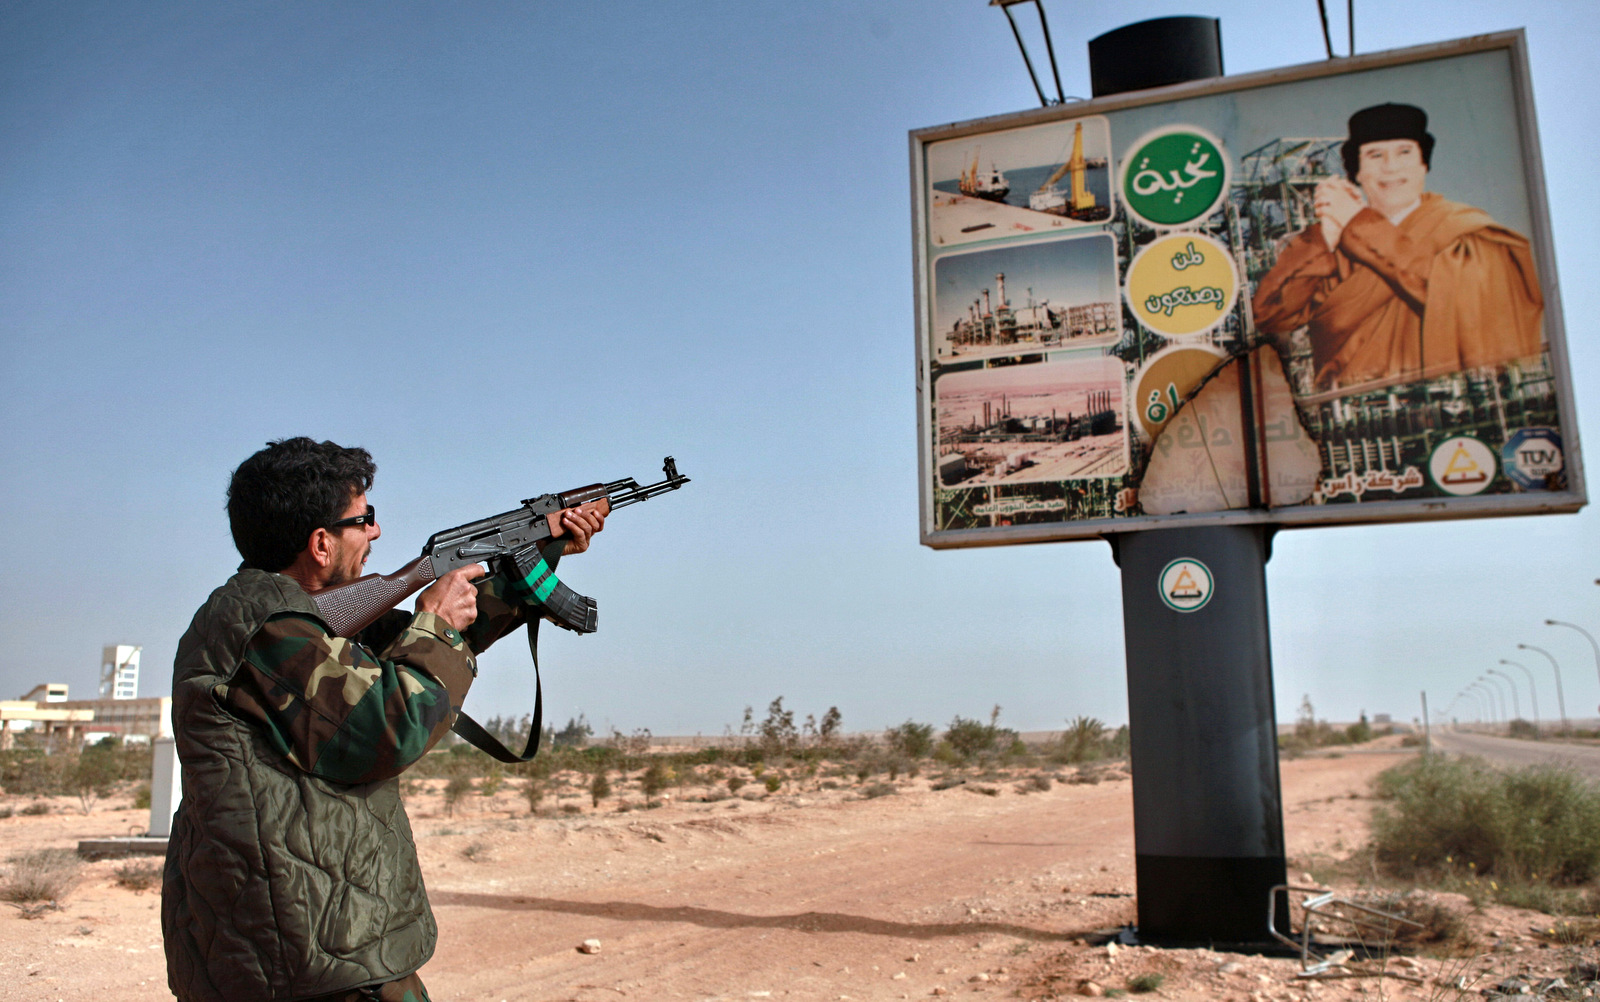 An armed Libyan rebel shoots an AK-47 at a poster of Muhammar Gaddafi in the captured rebel town of Ras-Lanuf in the east of the country (Photo: Andrey Stenin/Sputnik)